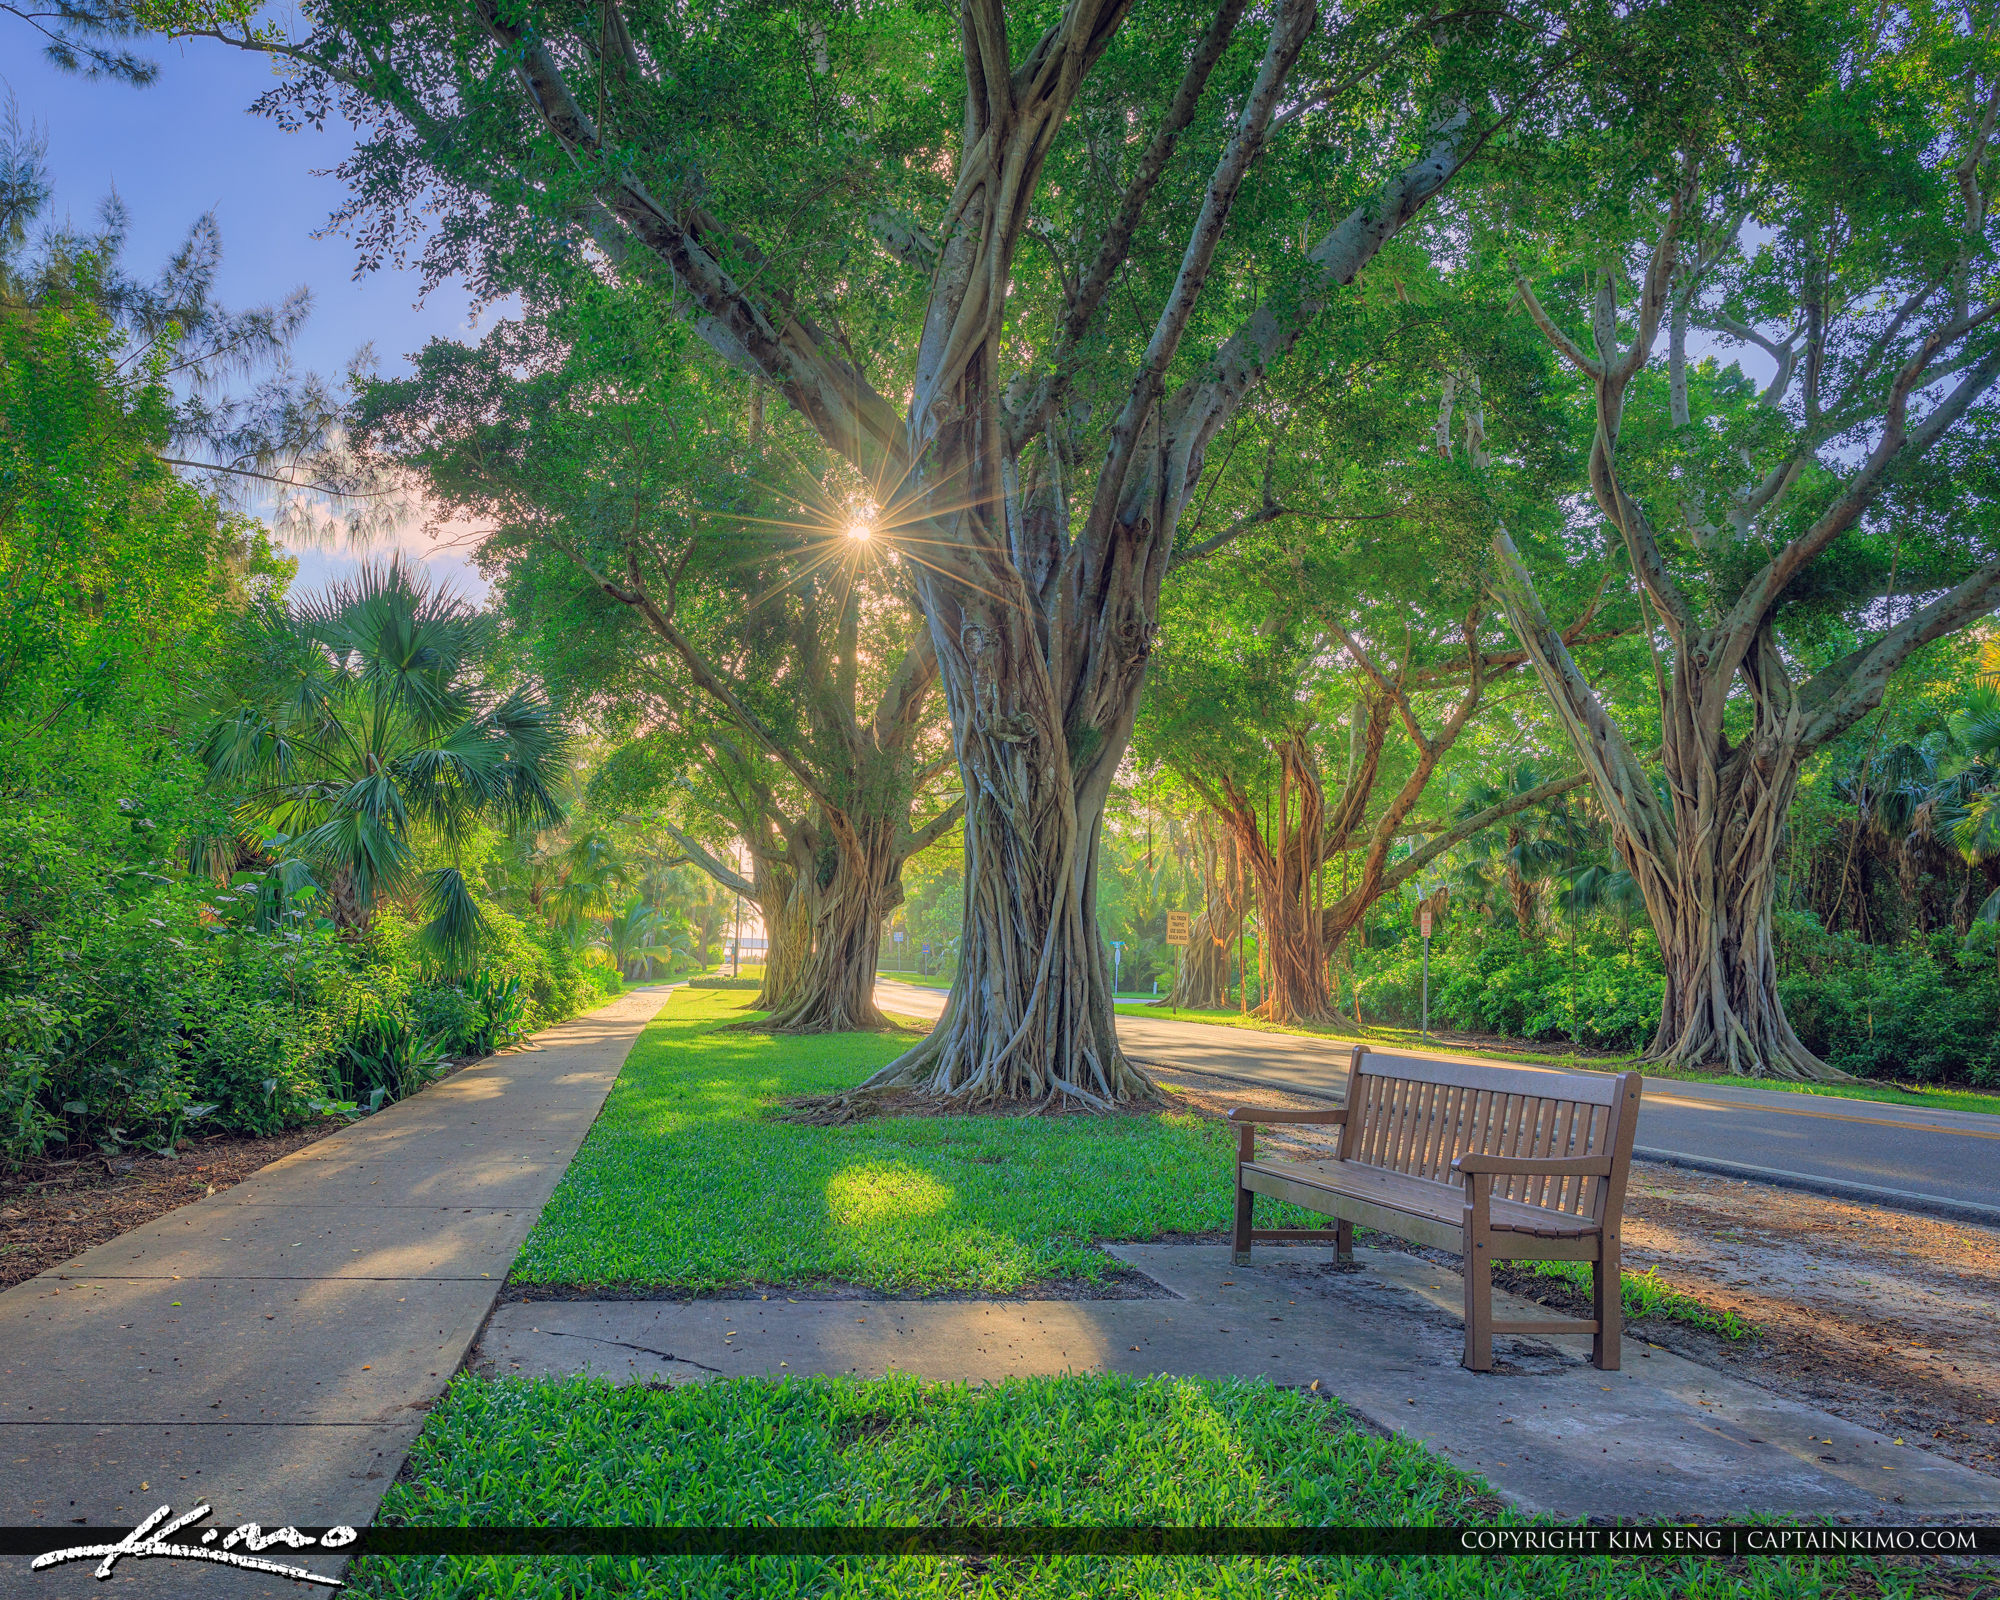 Bridge Road Hobe Sound Tree Canopy Sidewalk Bench